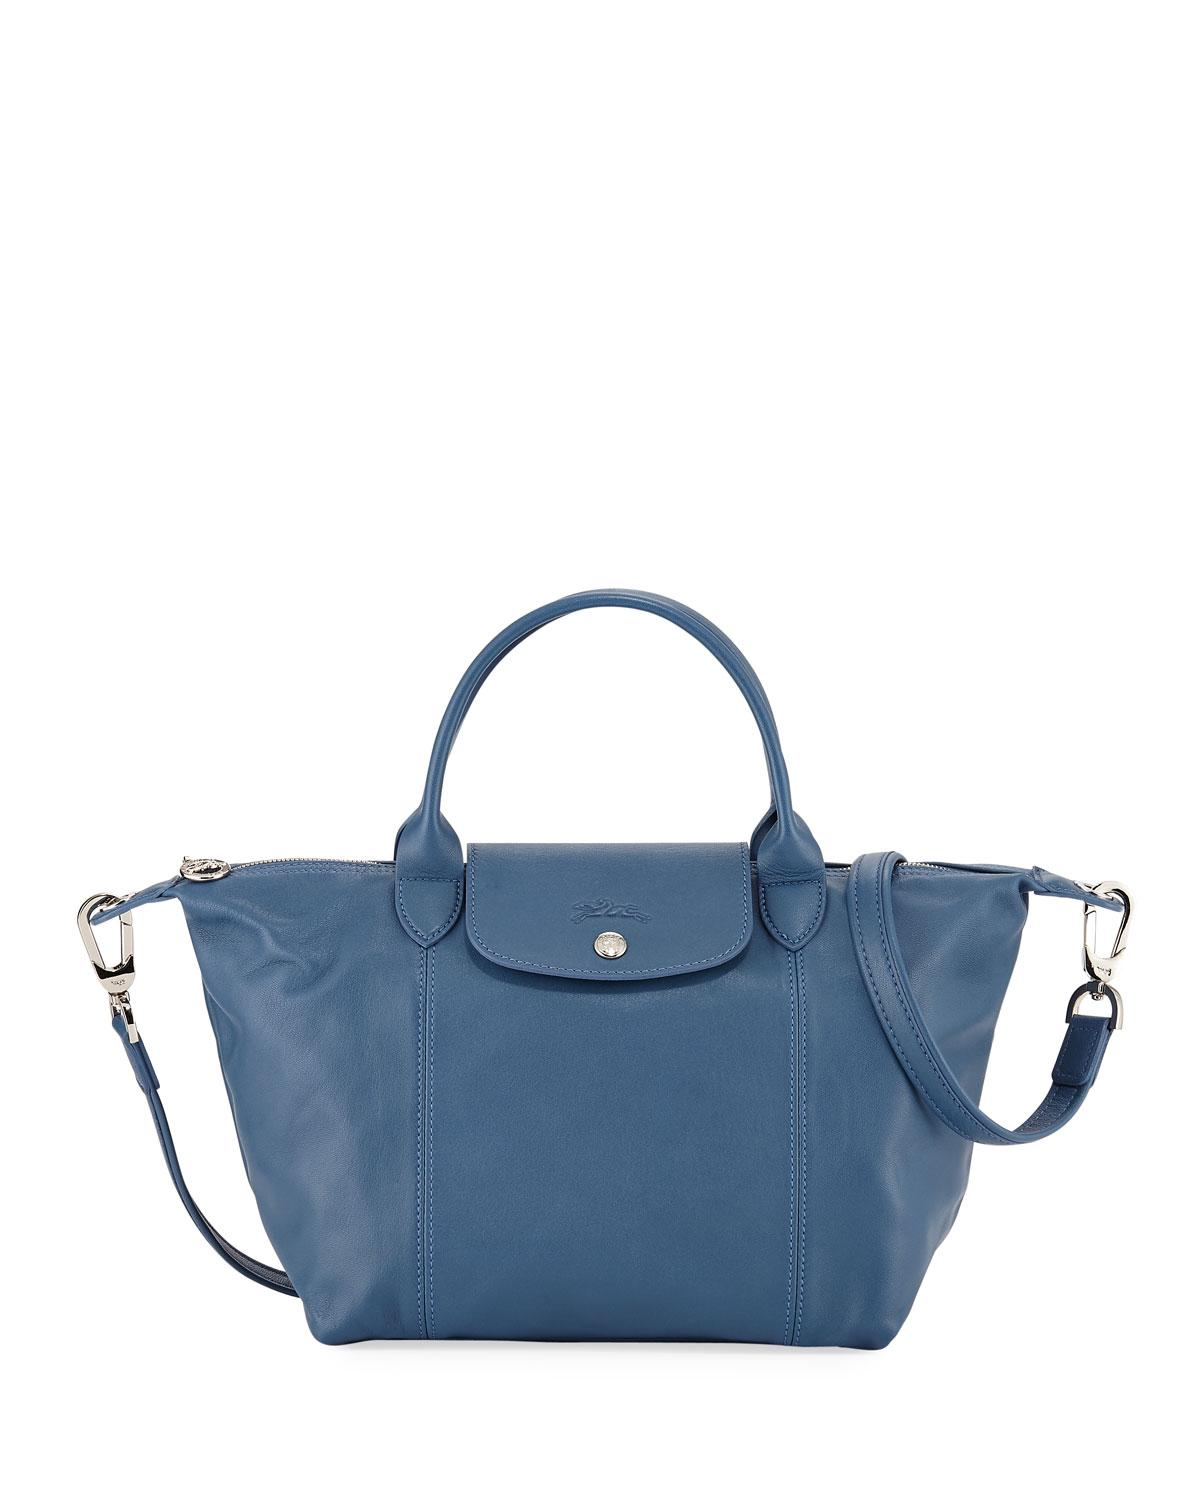 0a191bf311aa Lyst - Longchamp Le Pliage Cuir Small Leather Top-handle Bag With ...